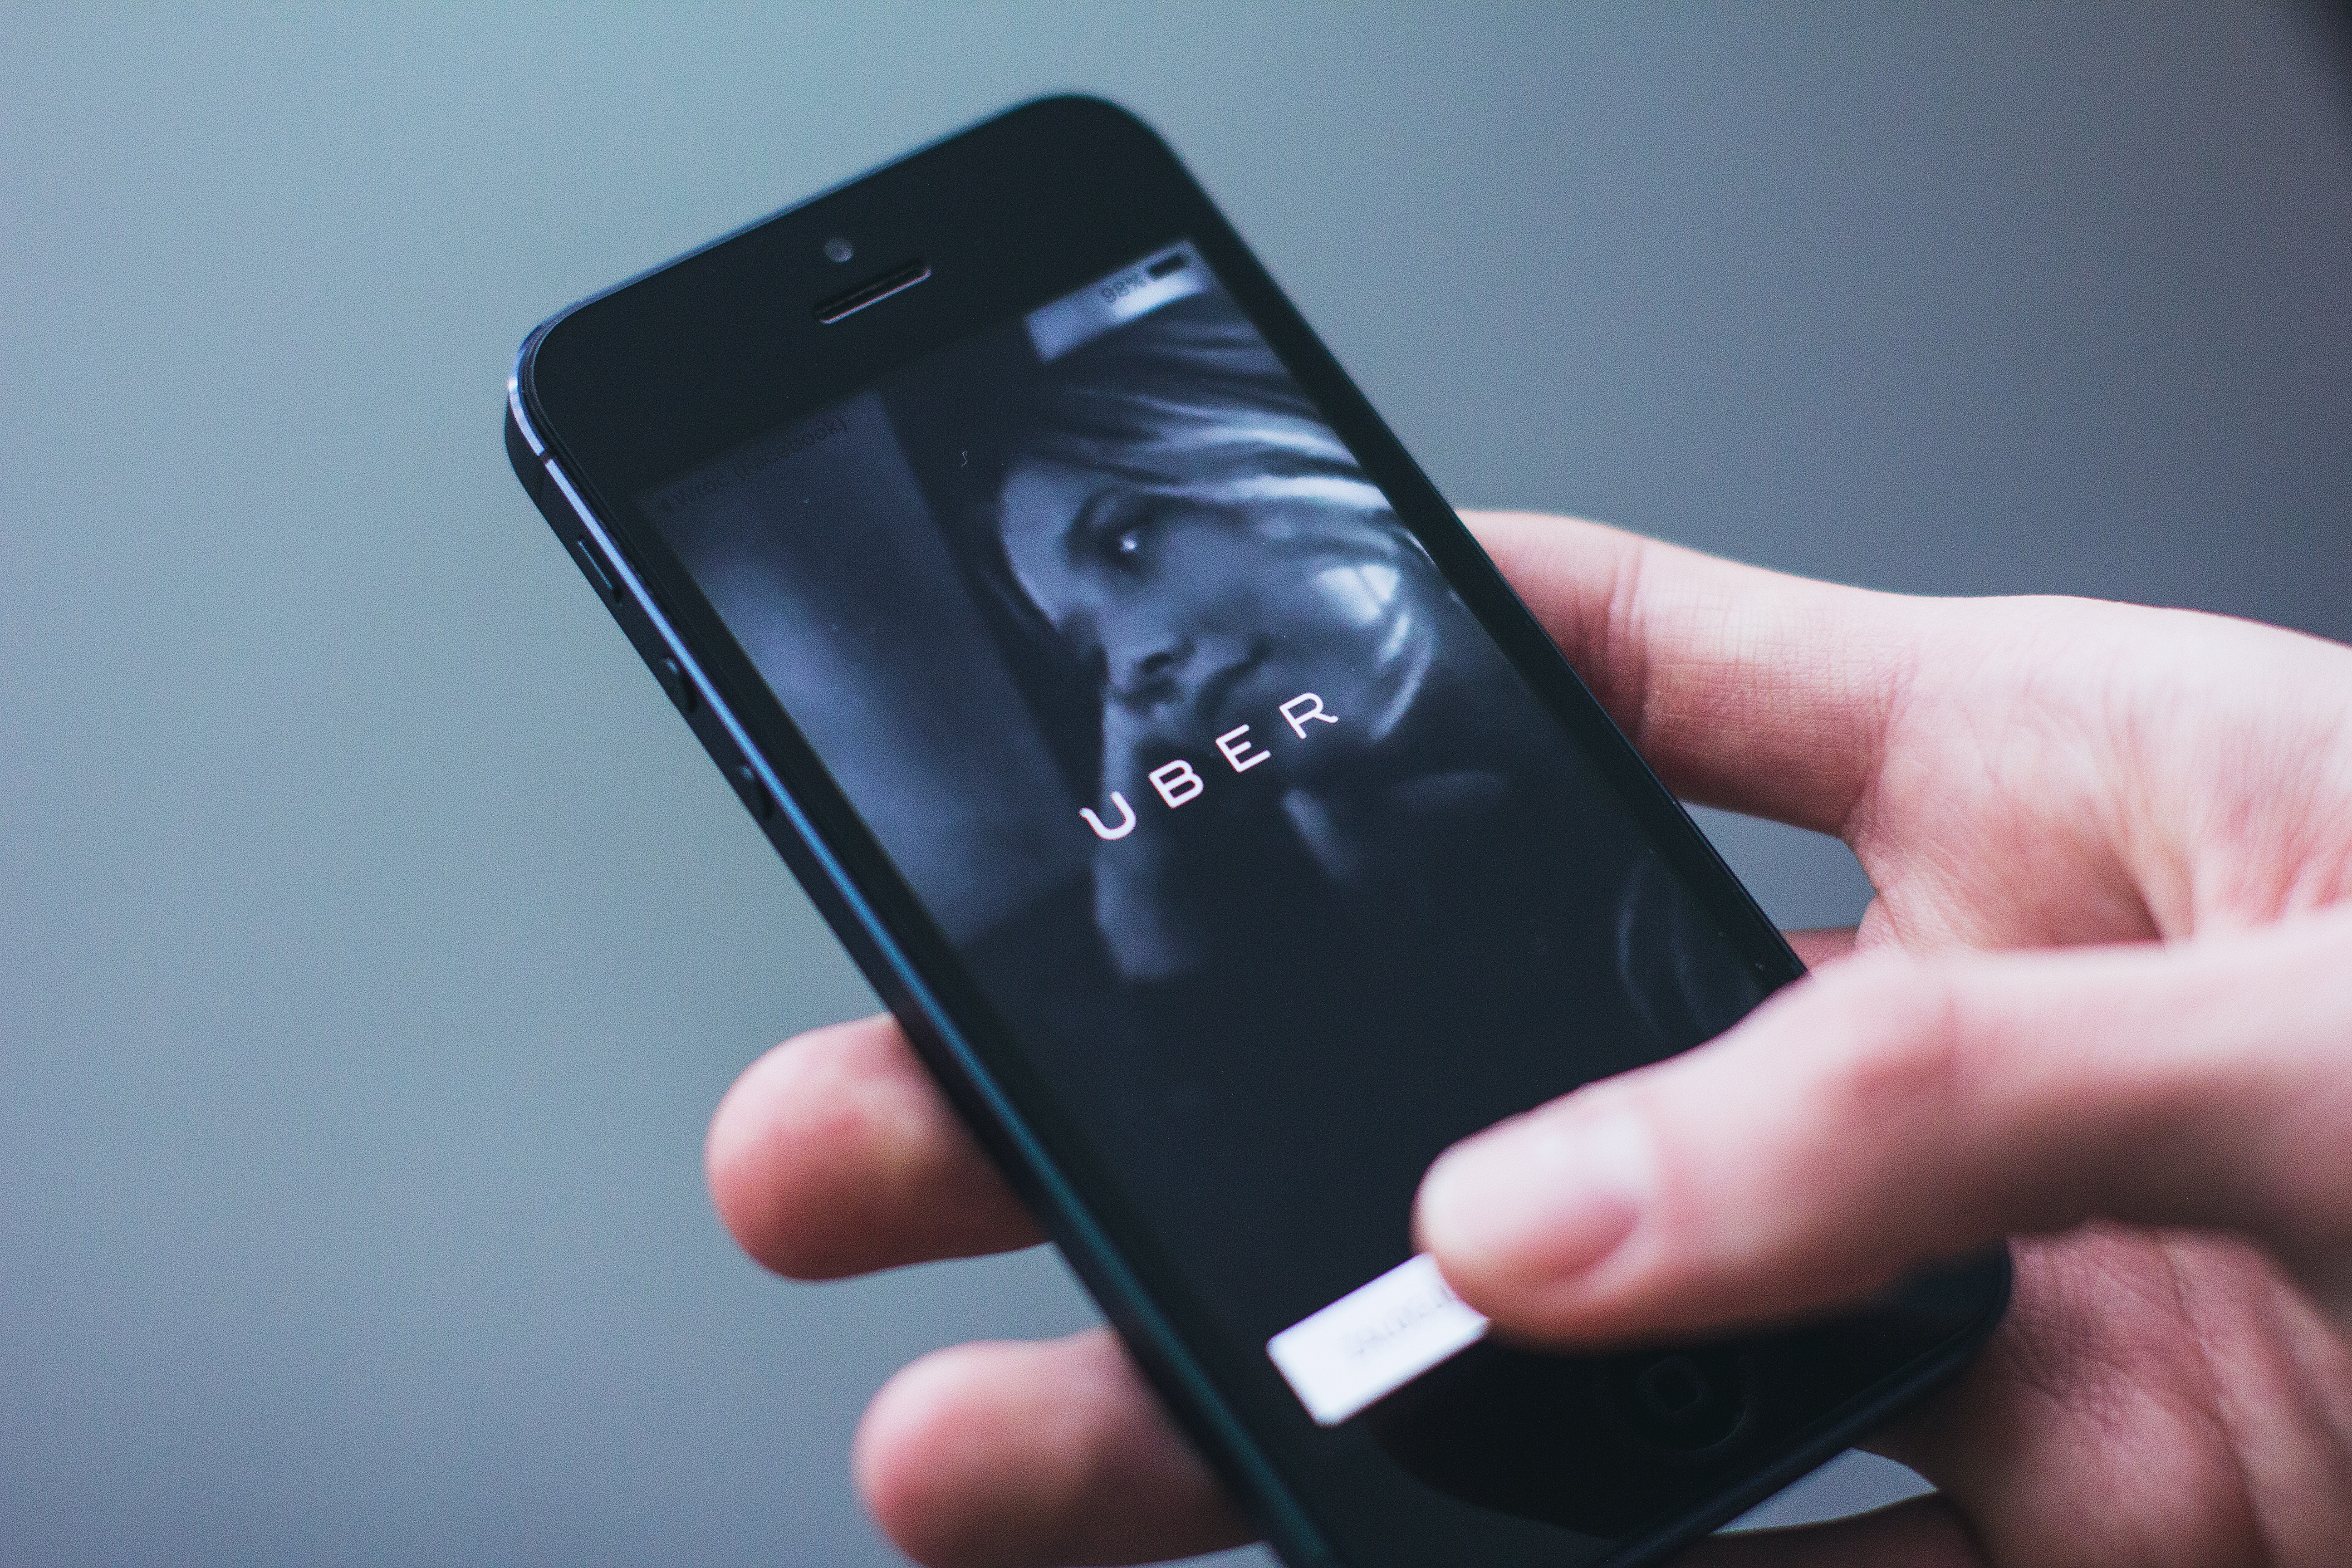 Uber user interface and simple experience for the future of payments